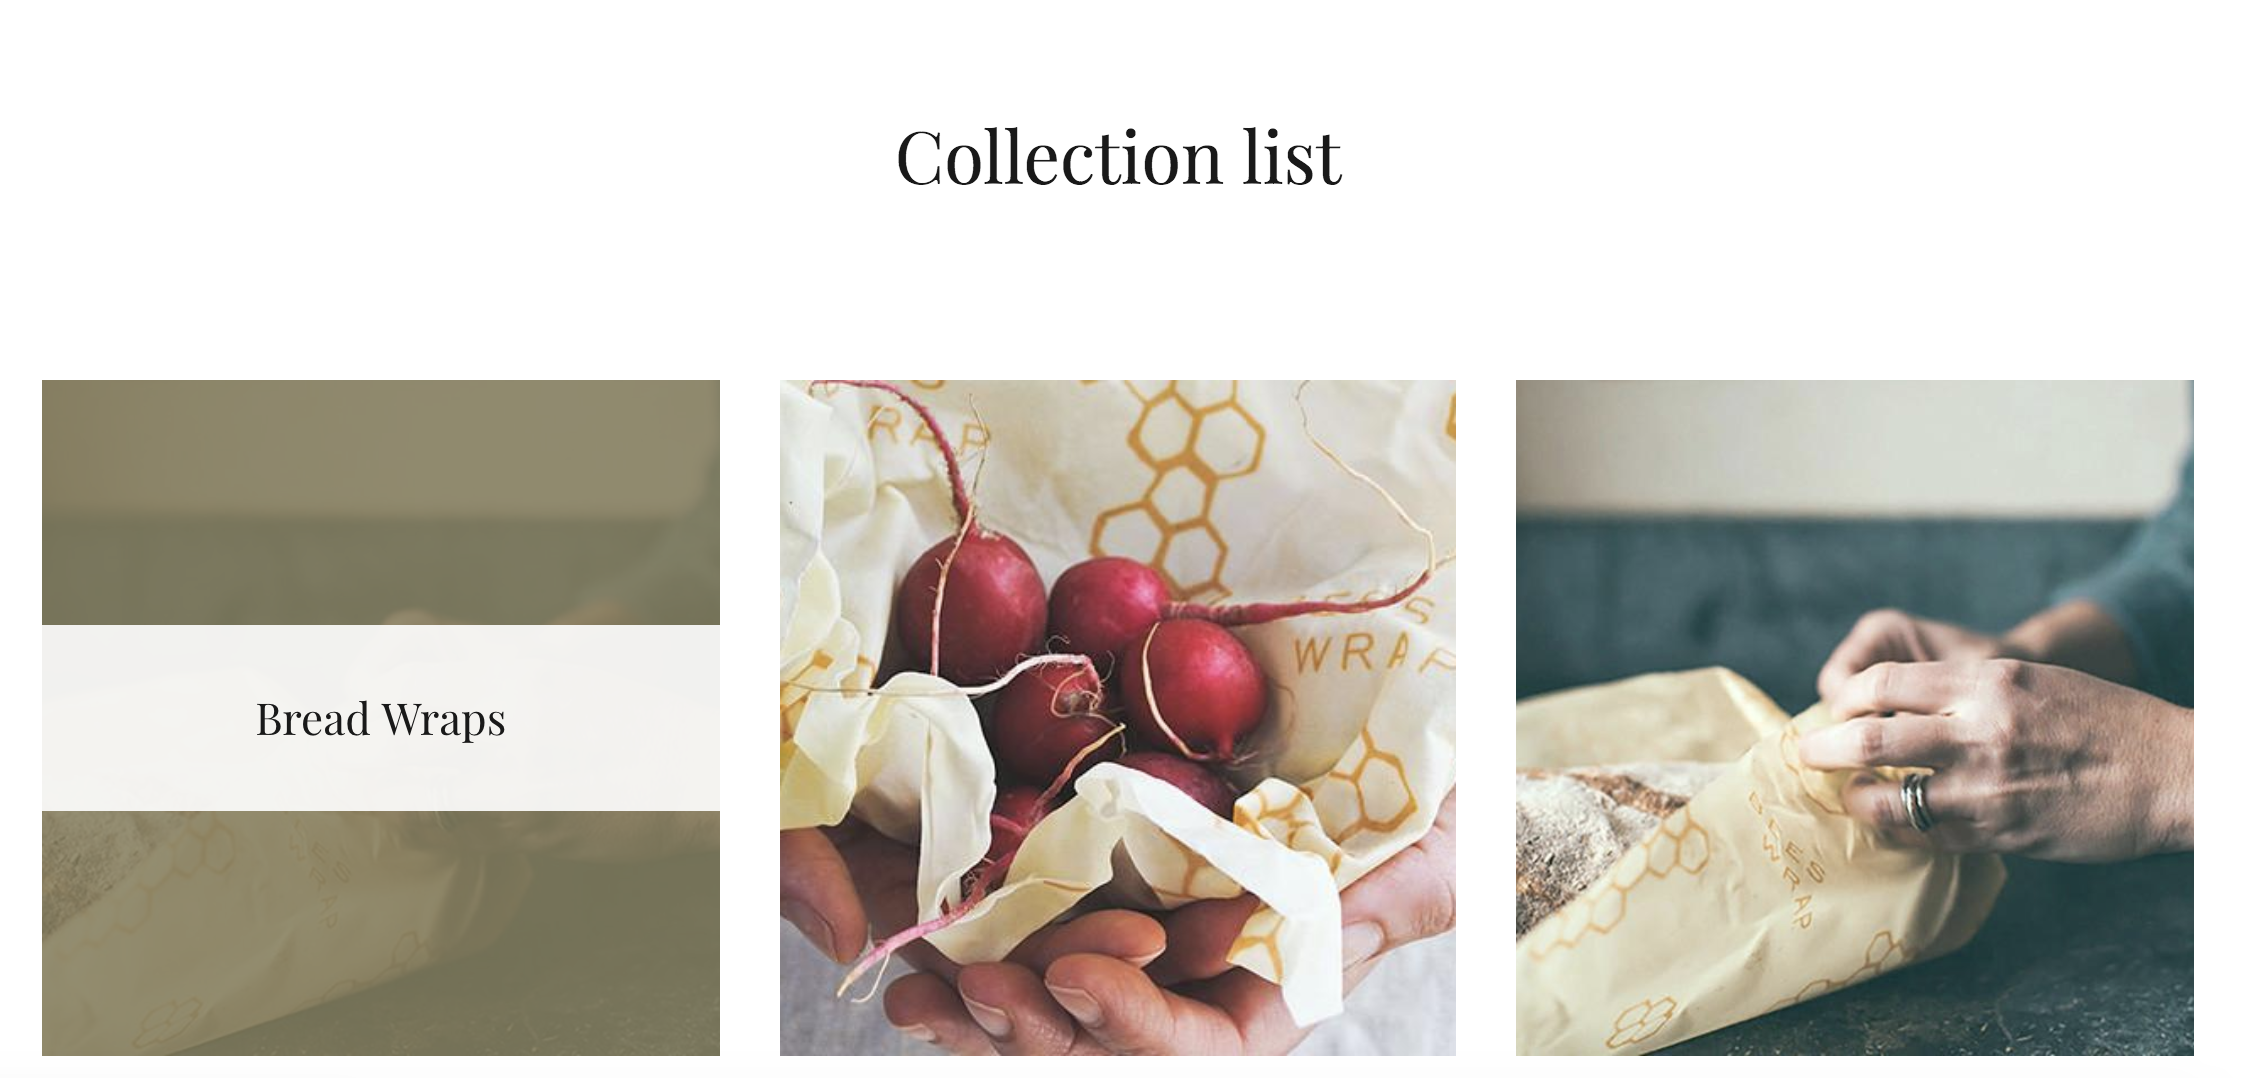 3 collections displayed in Collection list section